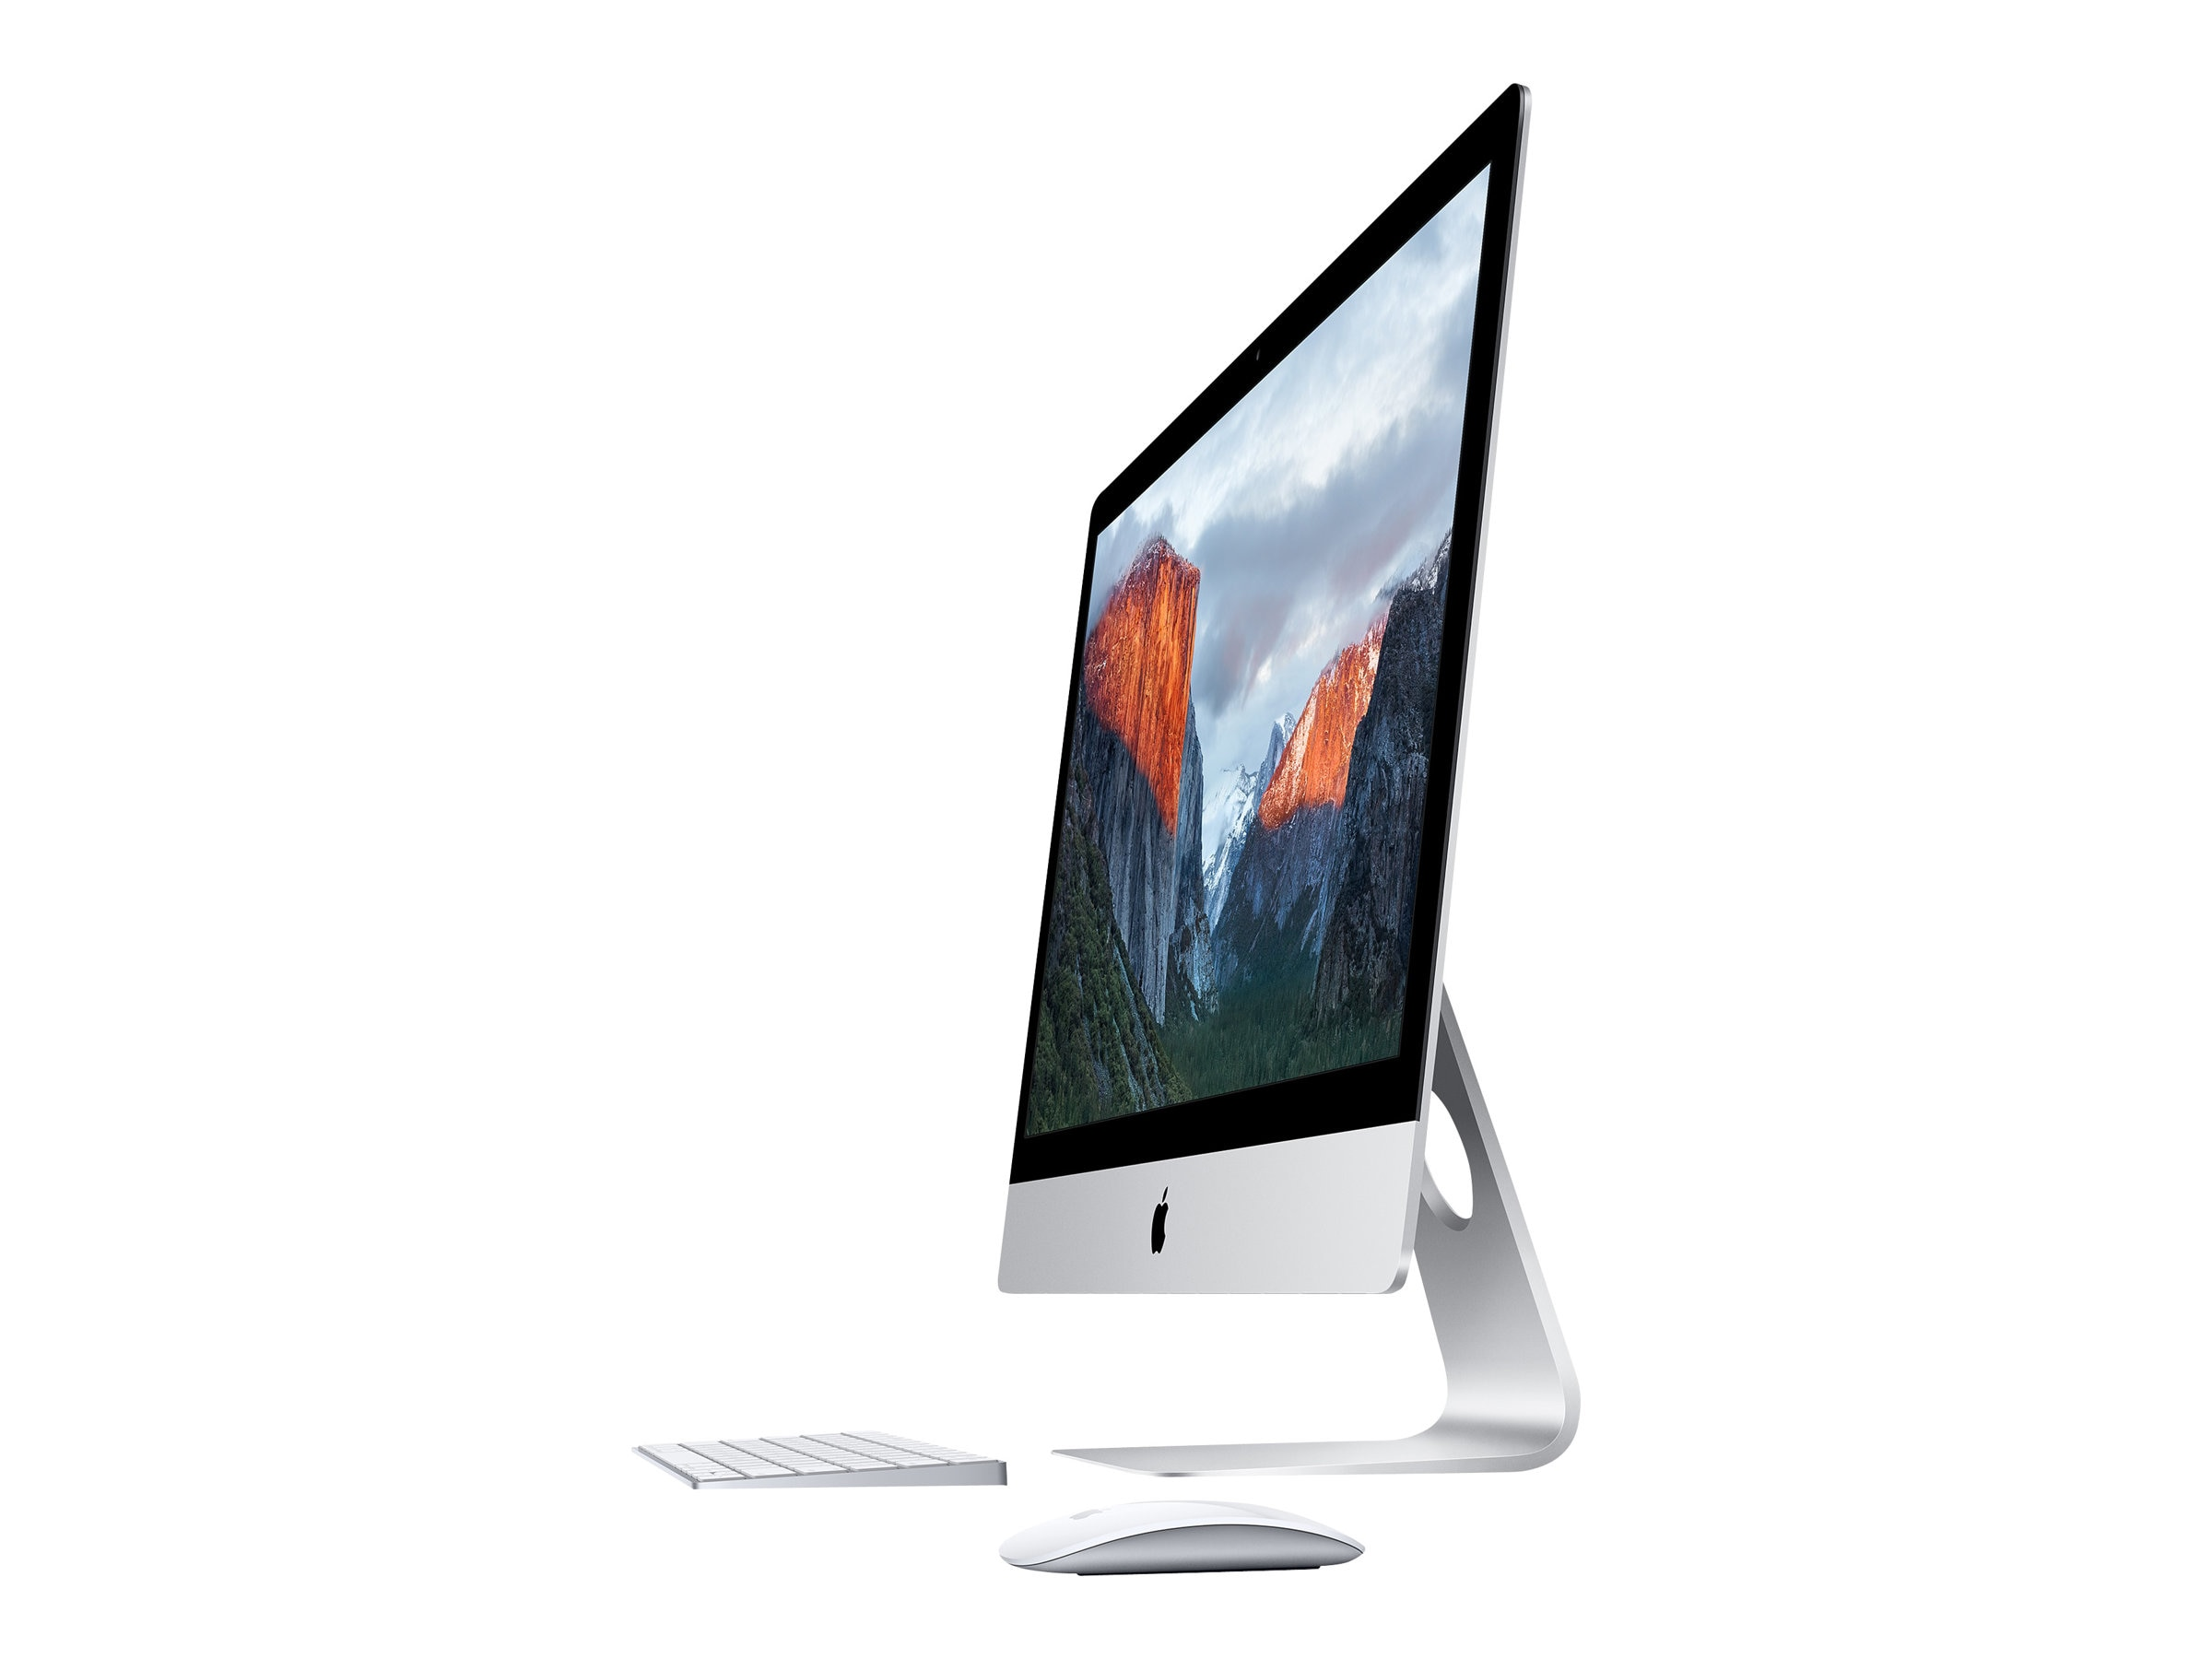 Apple iMac 21.5 QC 2.8GHz Core i5 8GB 1TB(5400) Iris Pro 6200 MagicKeyboard MagicMouse2